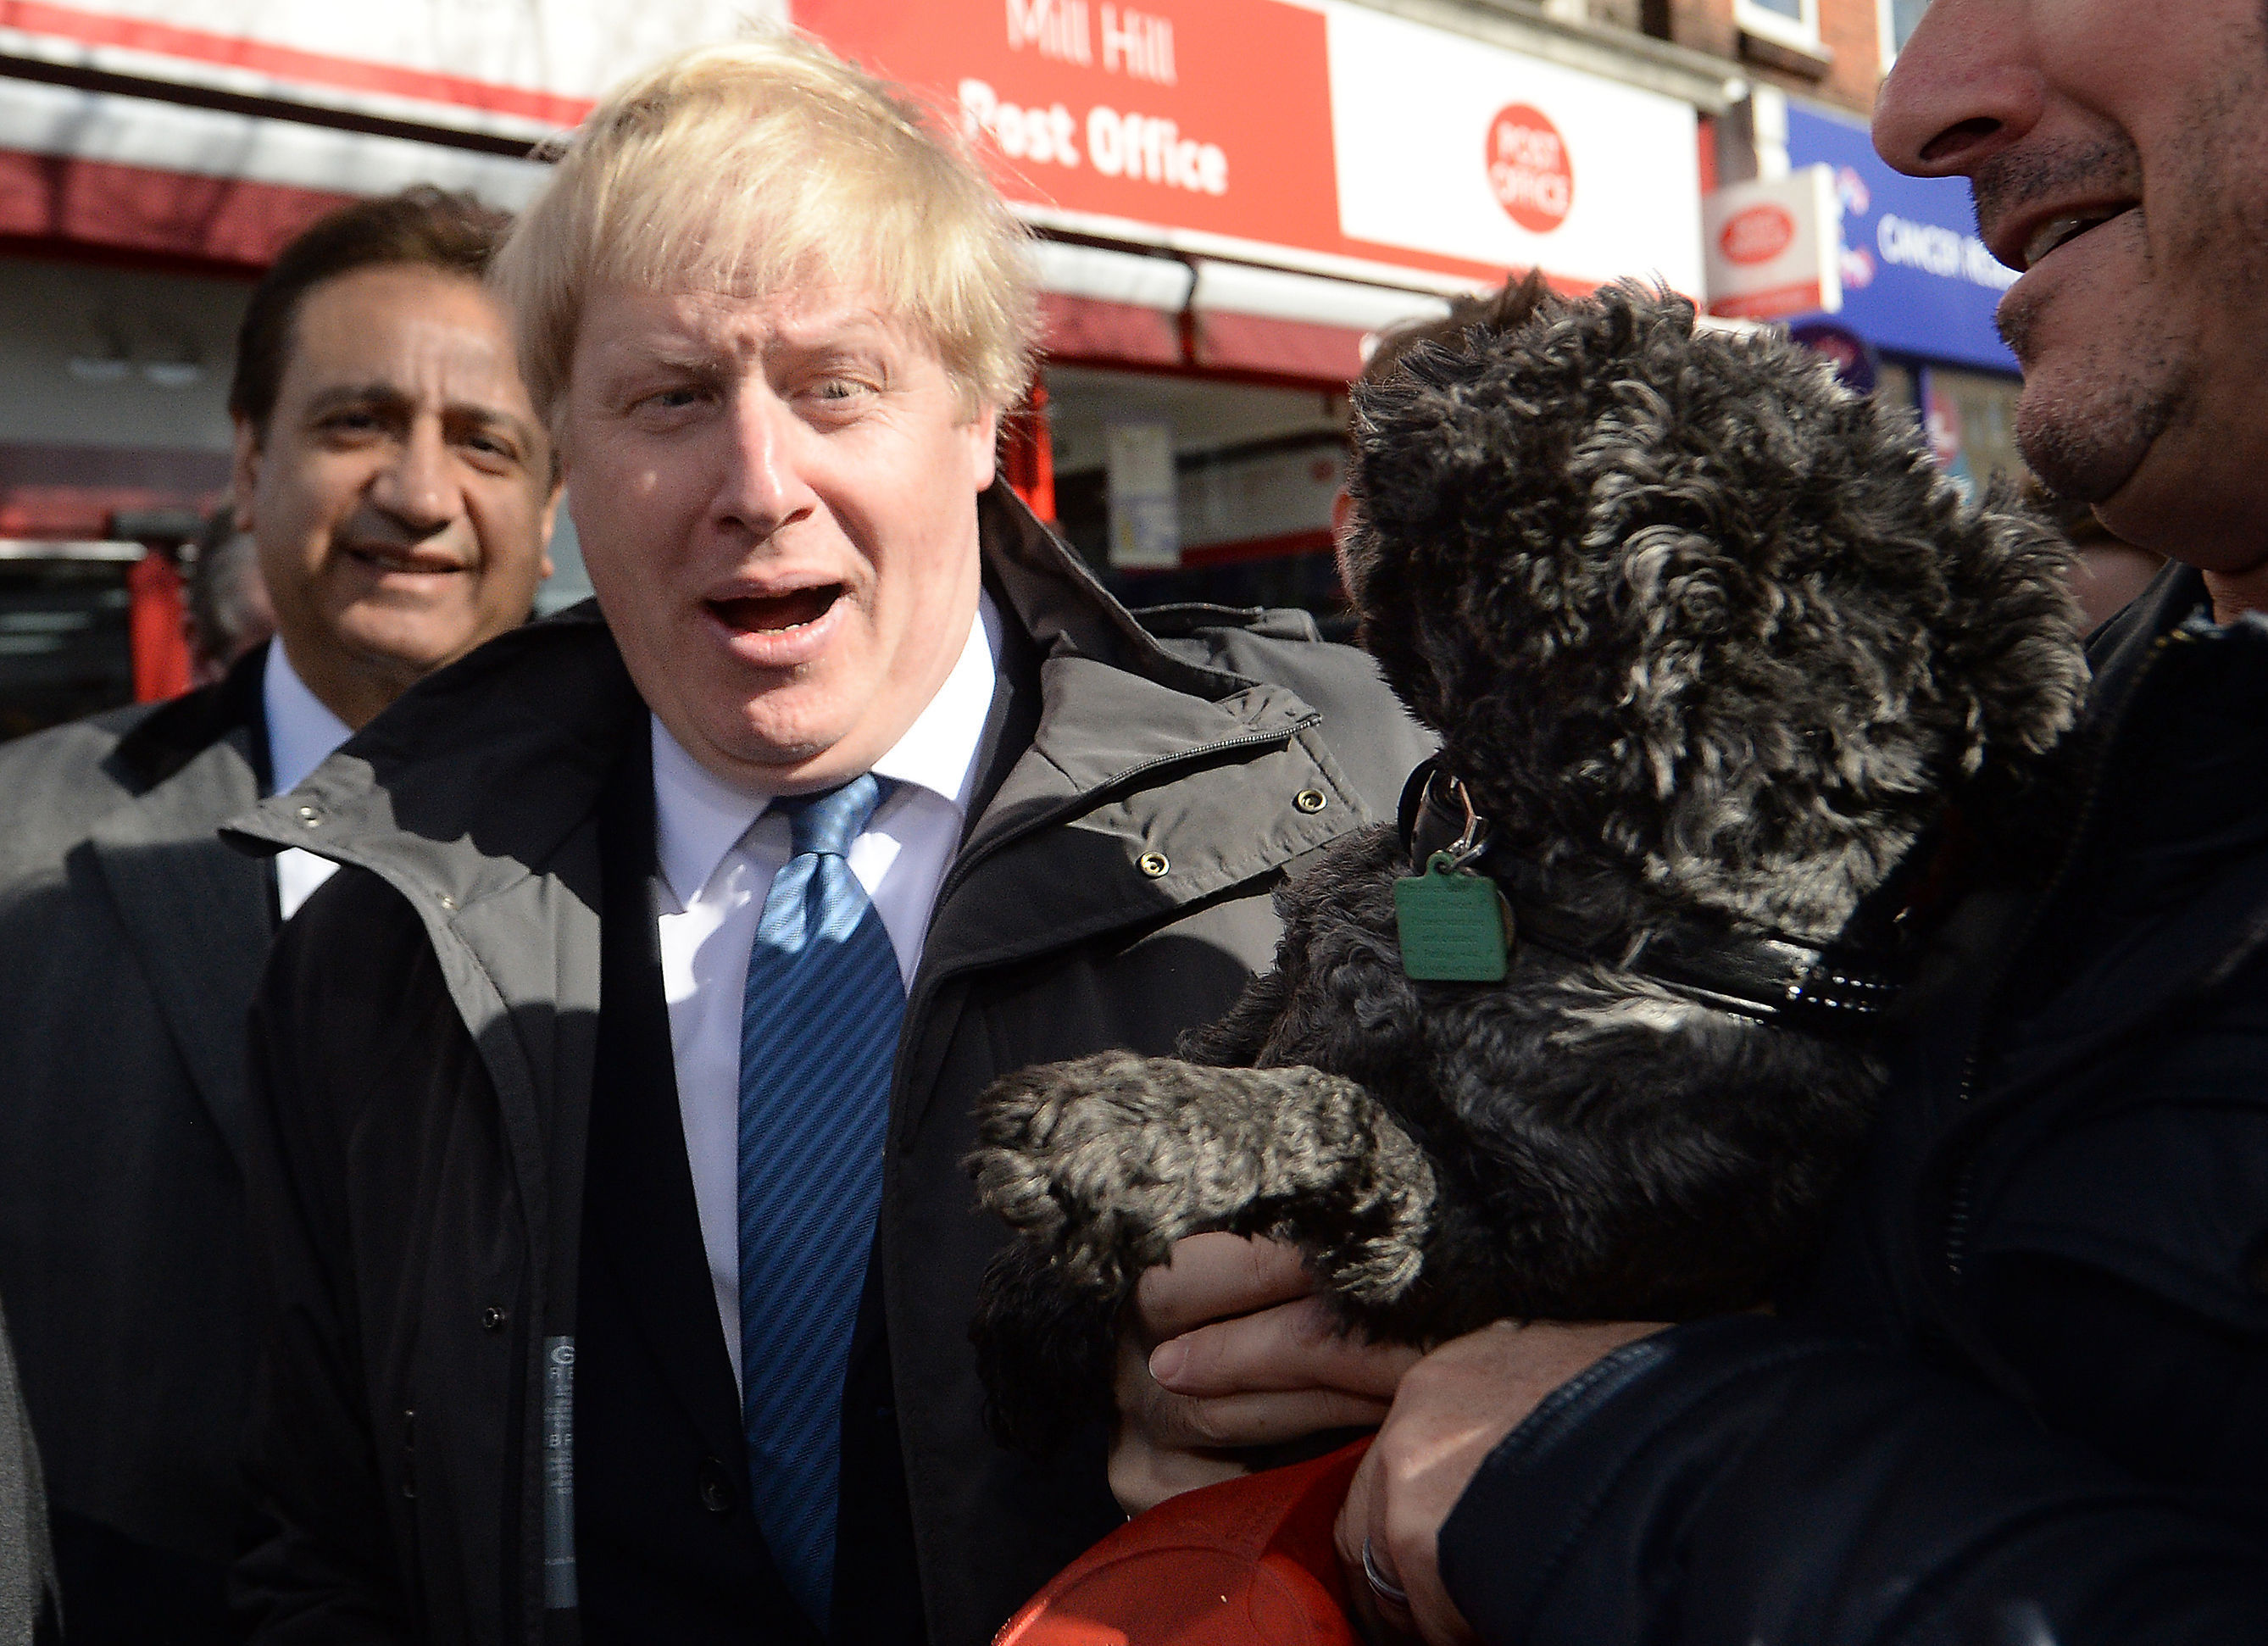 Mayor of London Boris Johnson after being licked by a dog as he meets members of the public and local business owners after launching the Conservative London campaign at Hartley Hall in Mill Hill, London.